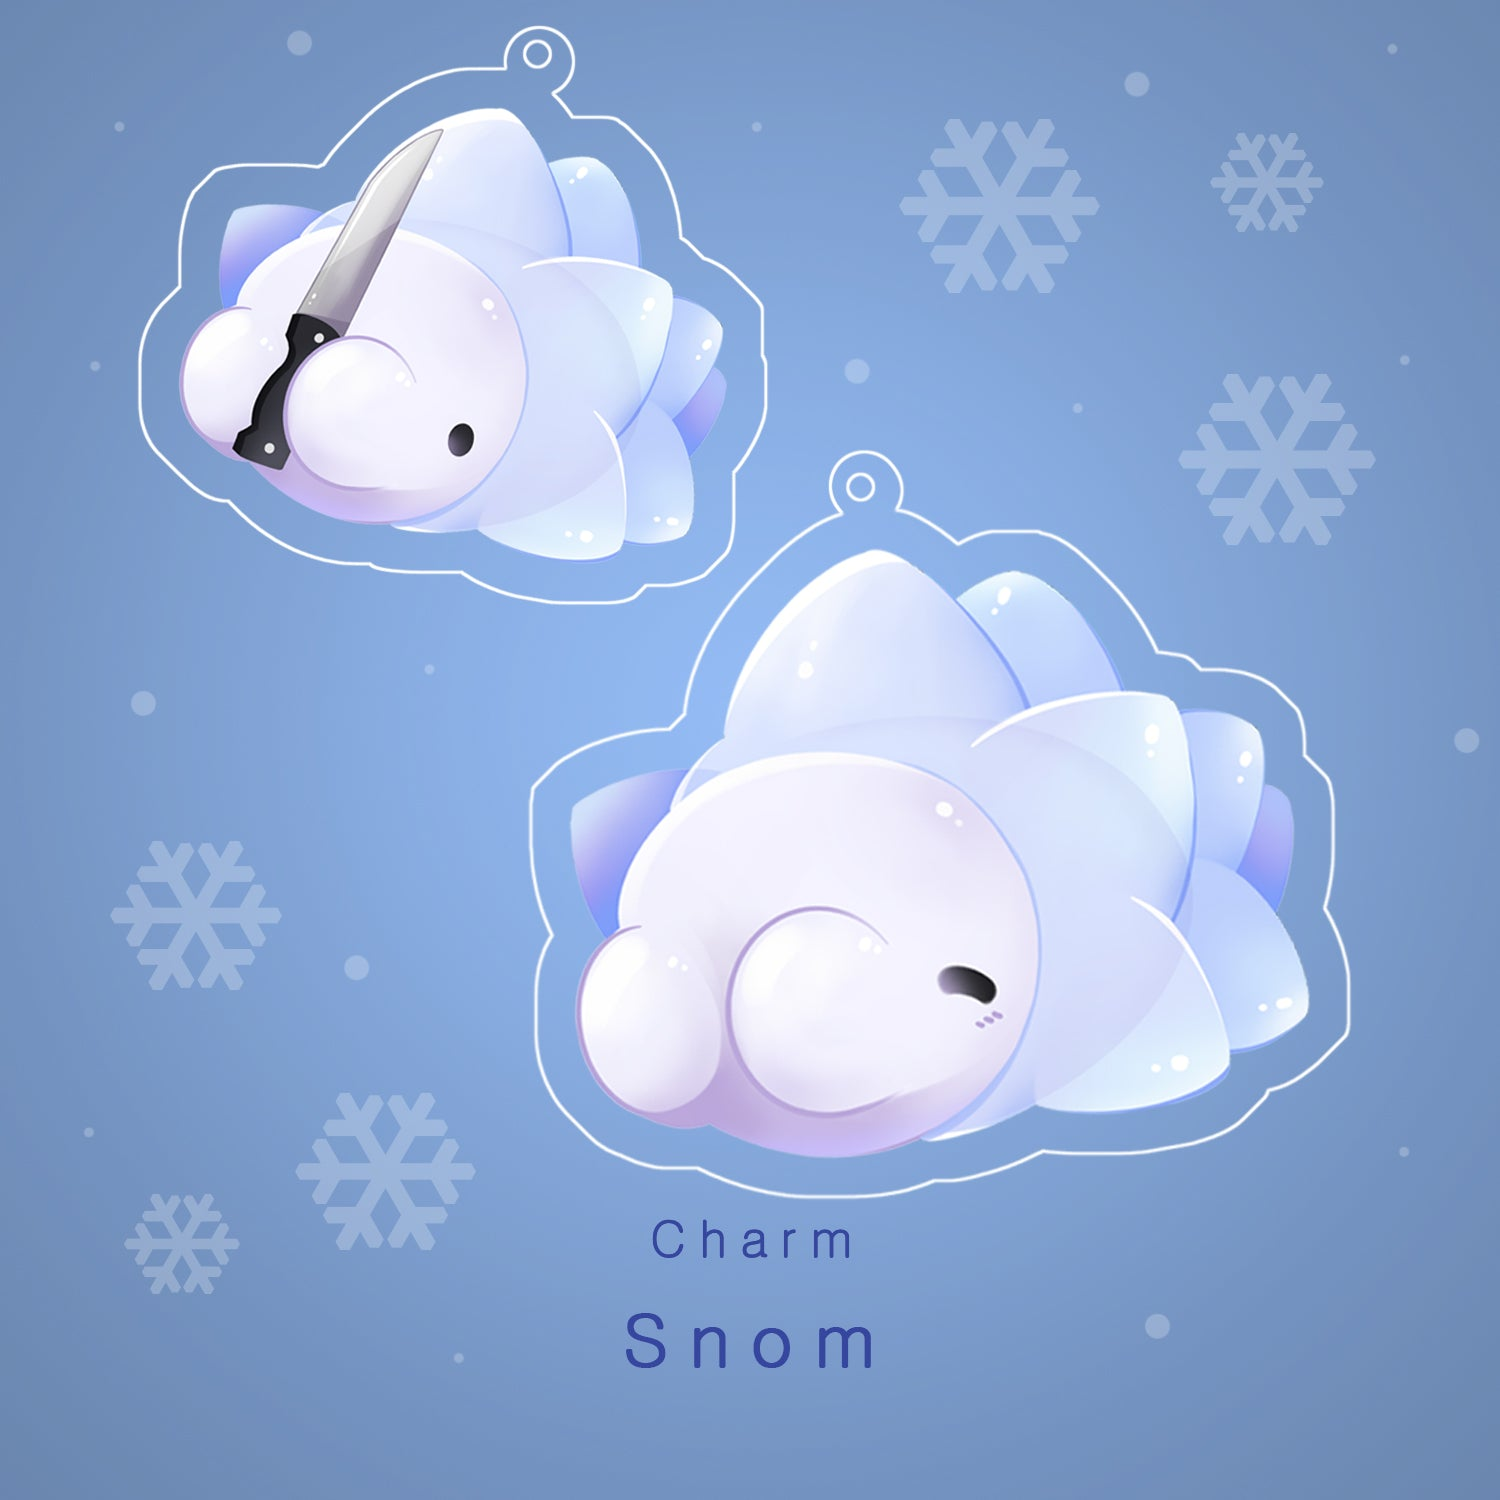 [Pokemon] Snom - Charm